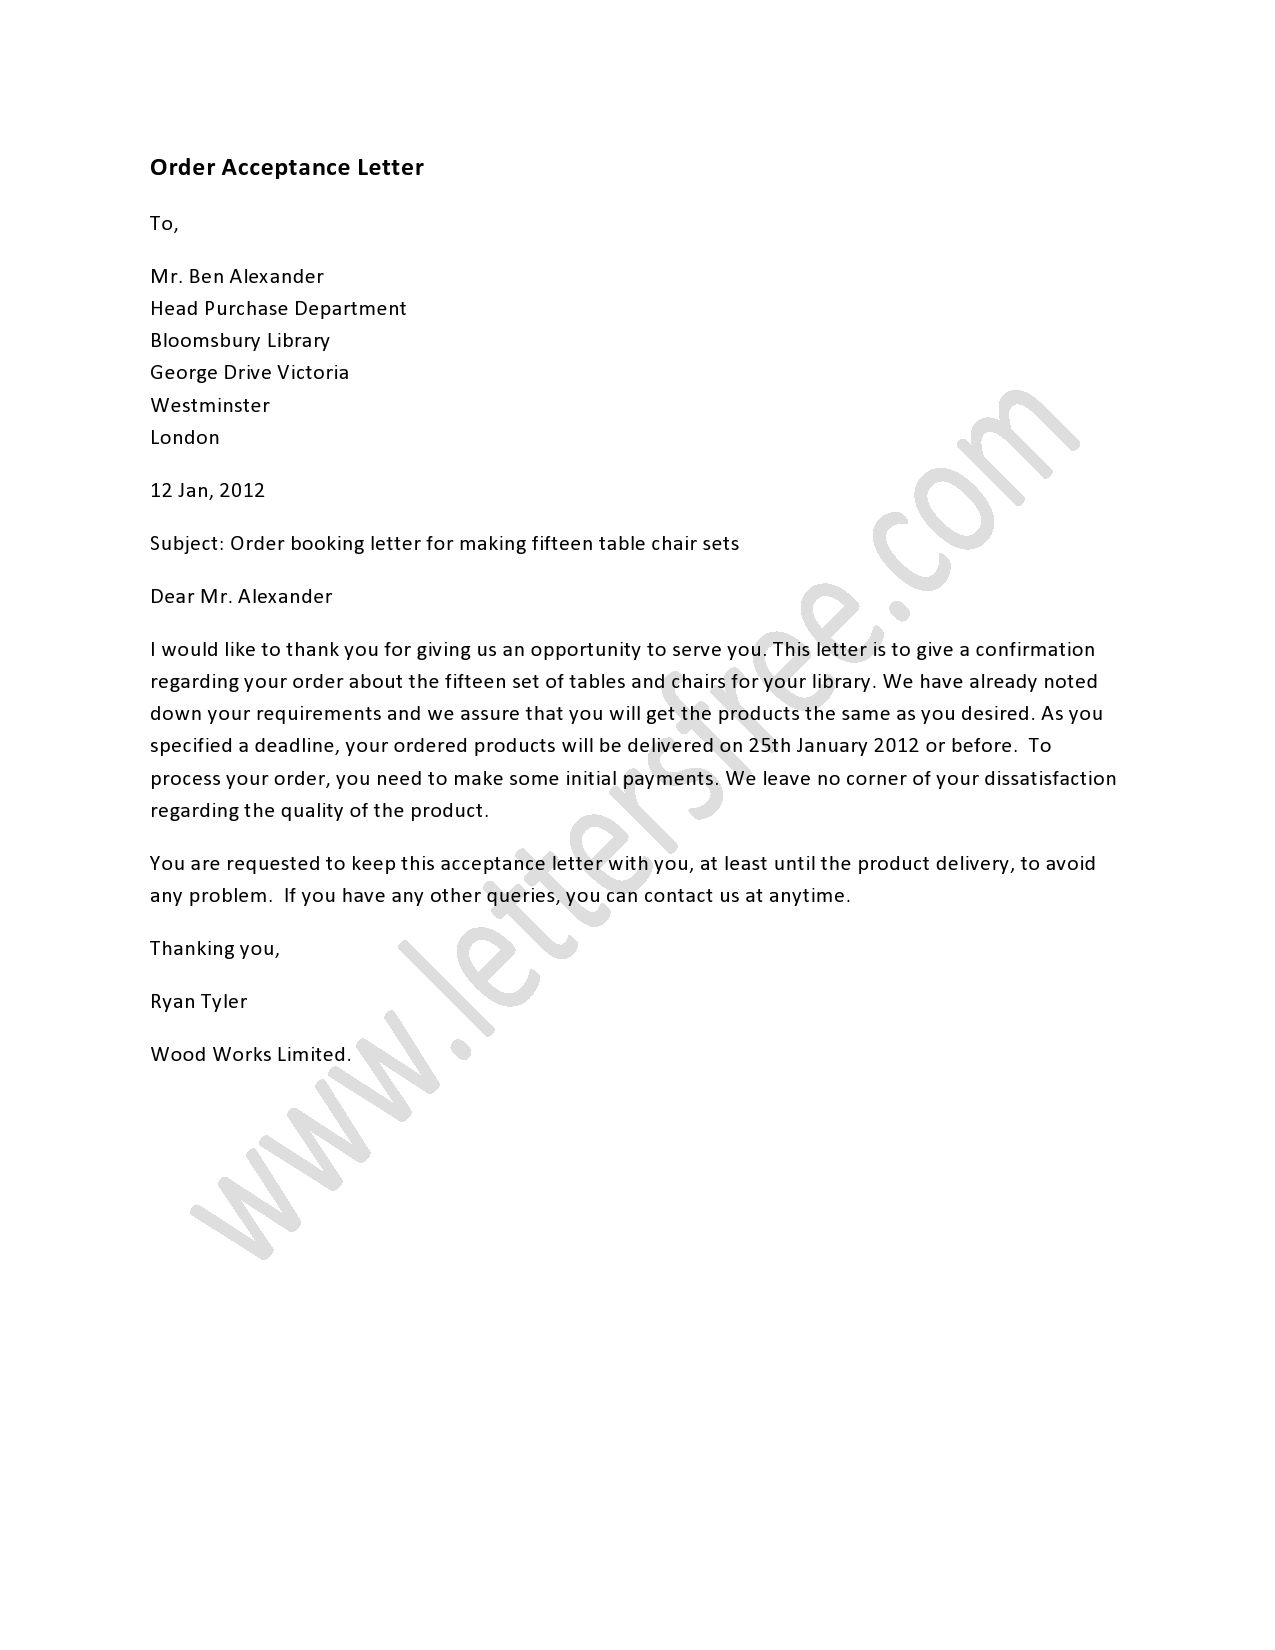 an order acceptance letter is written to inform a company about sample of order letter is written to explore the ways of writing such acceptance letter the order template of the letter is also provided to help you